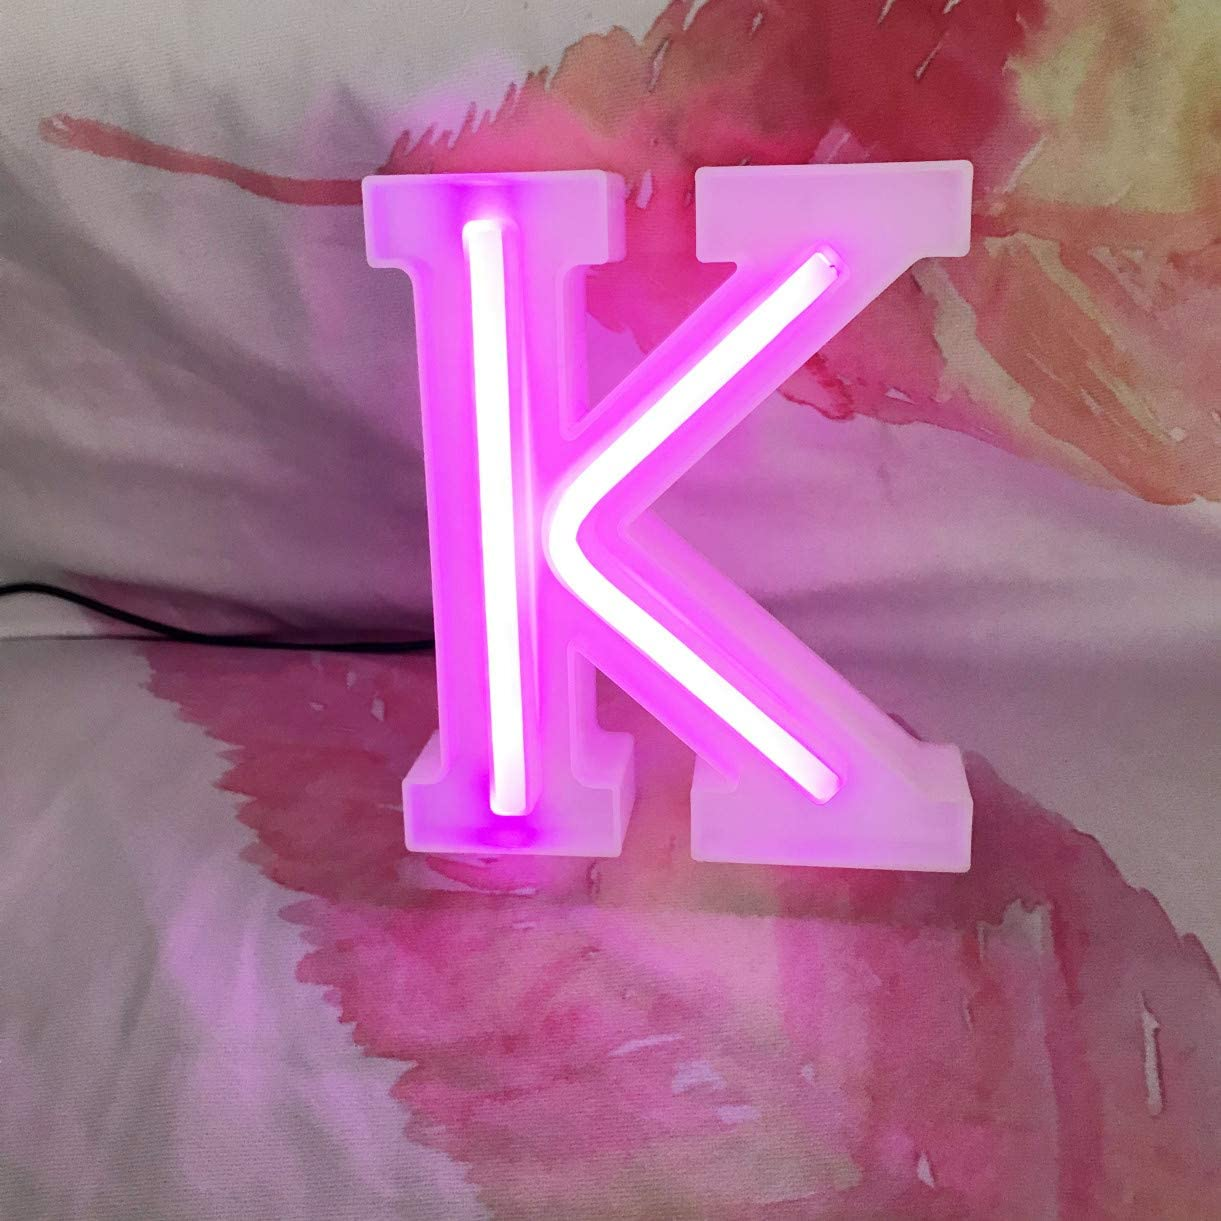 QiaoFei Light Up Marquee Letters Lights Letters Neon Signs, Pink Wall Decor/Table Decor for Home Bar Christmas, Birthday Party, Valentine's Day Words-Pink Letters (K)